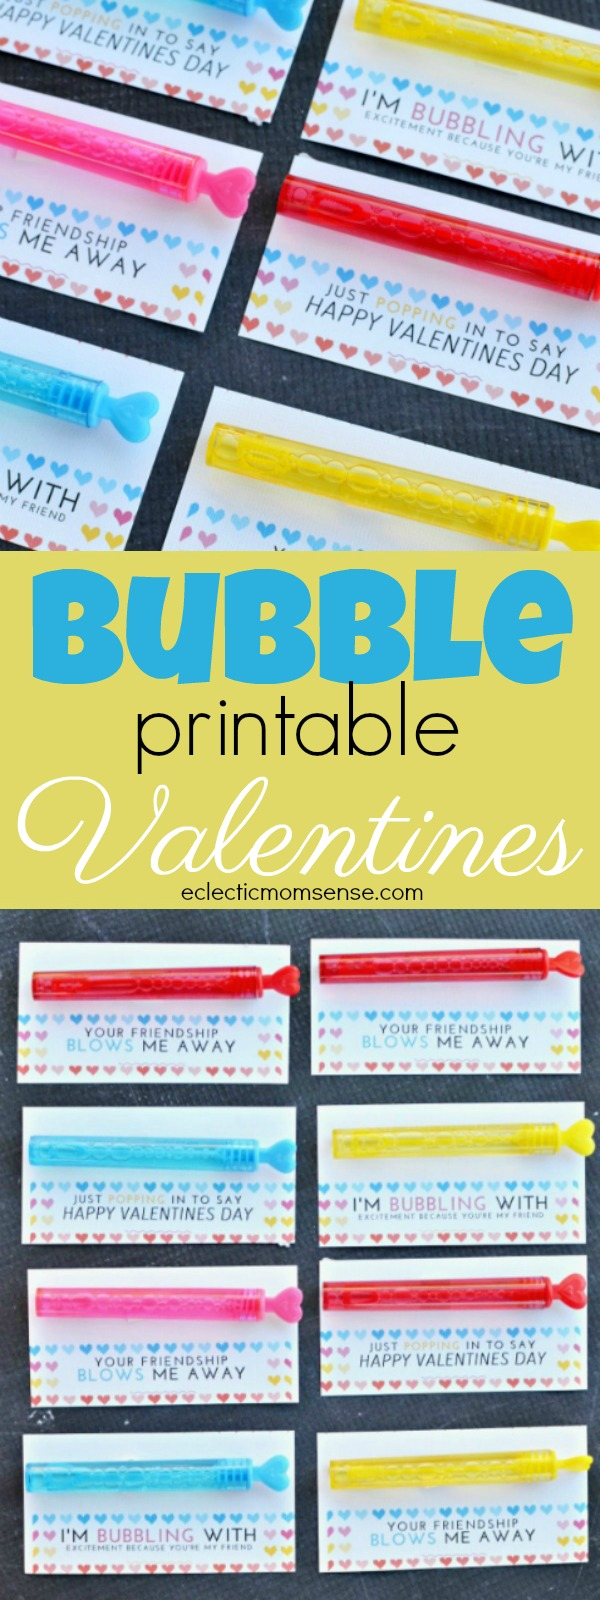 Printable Bubble Valentines